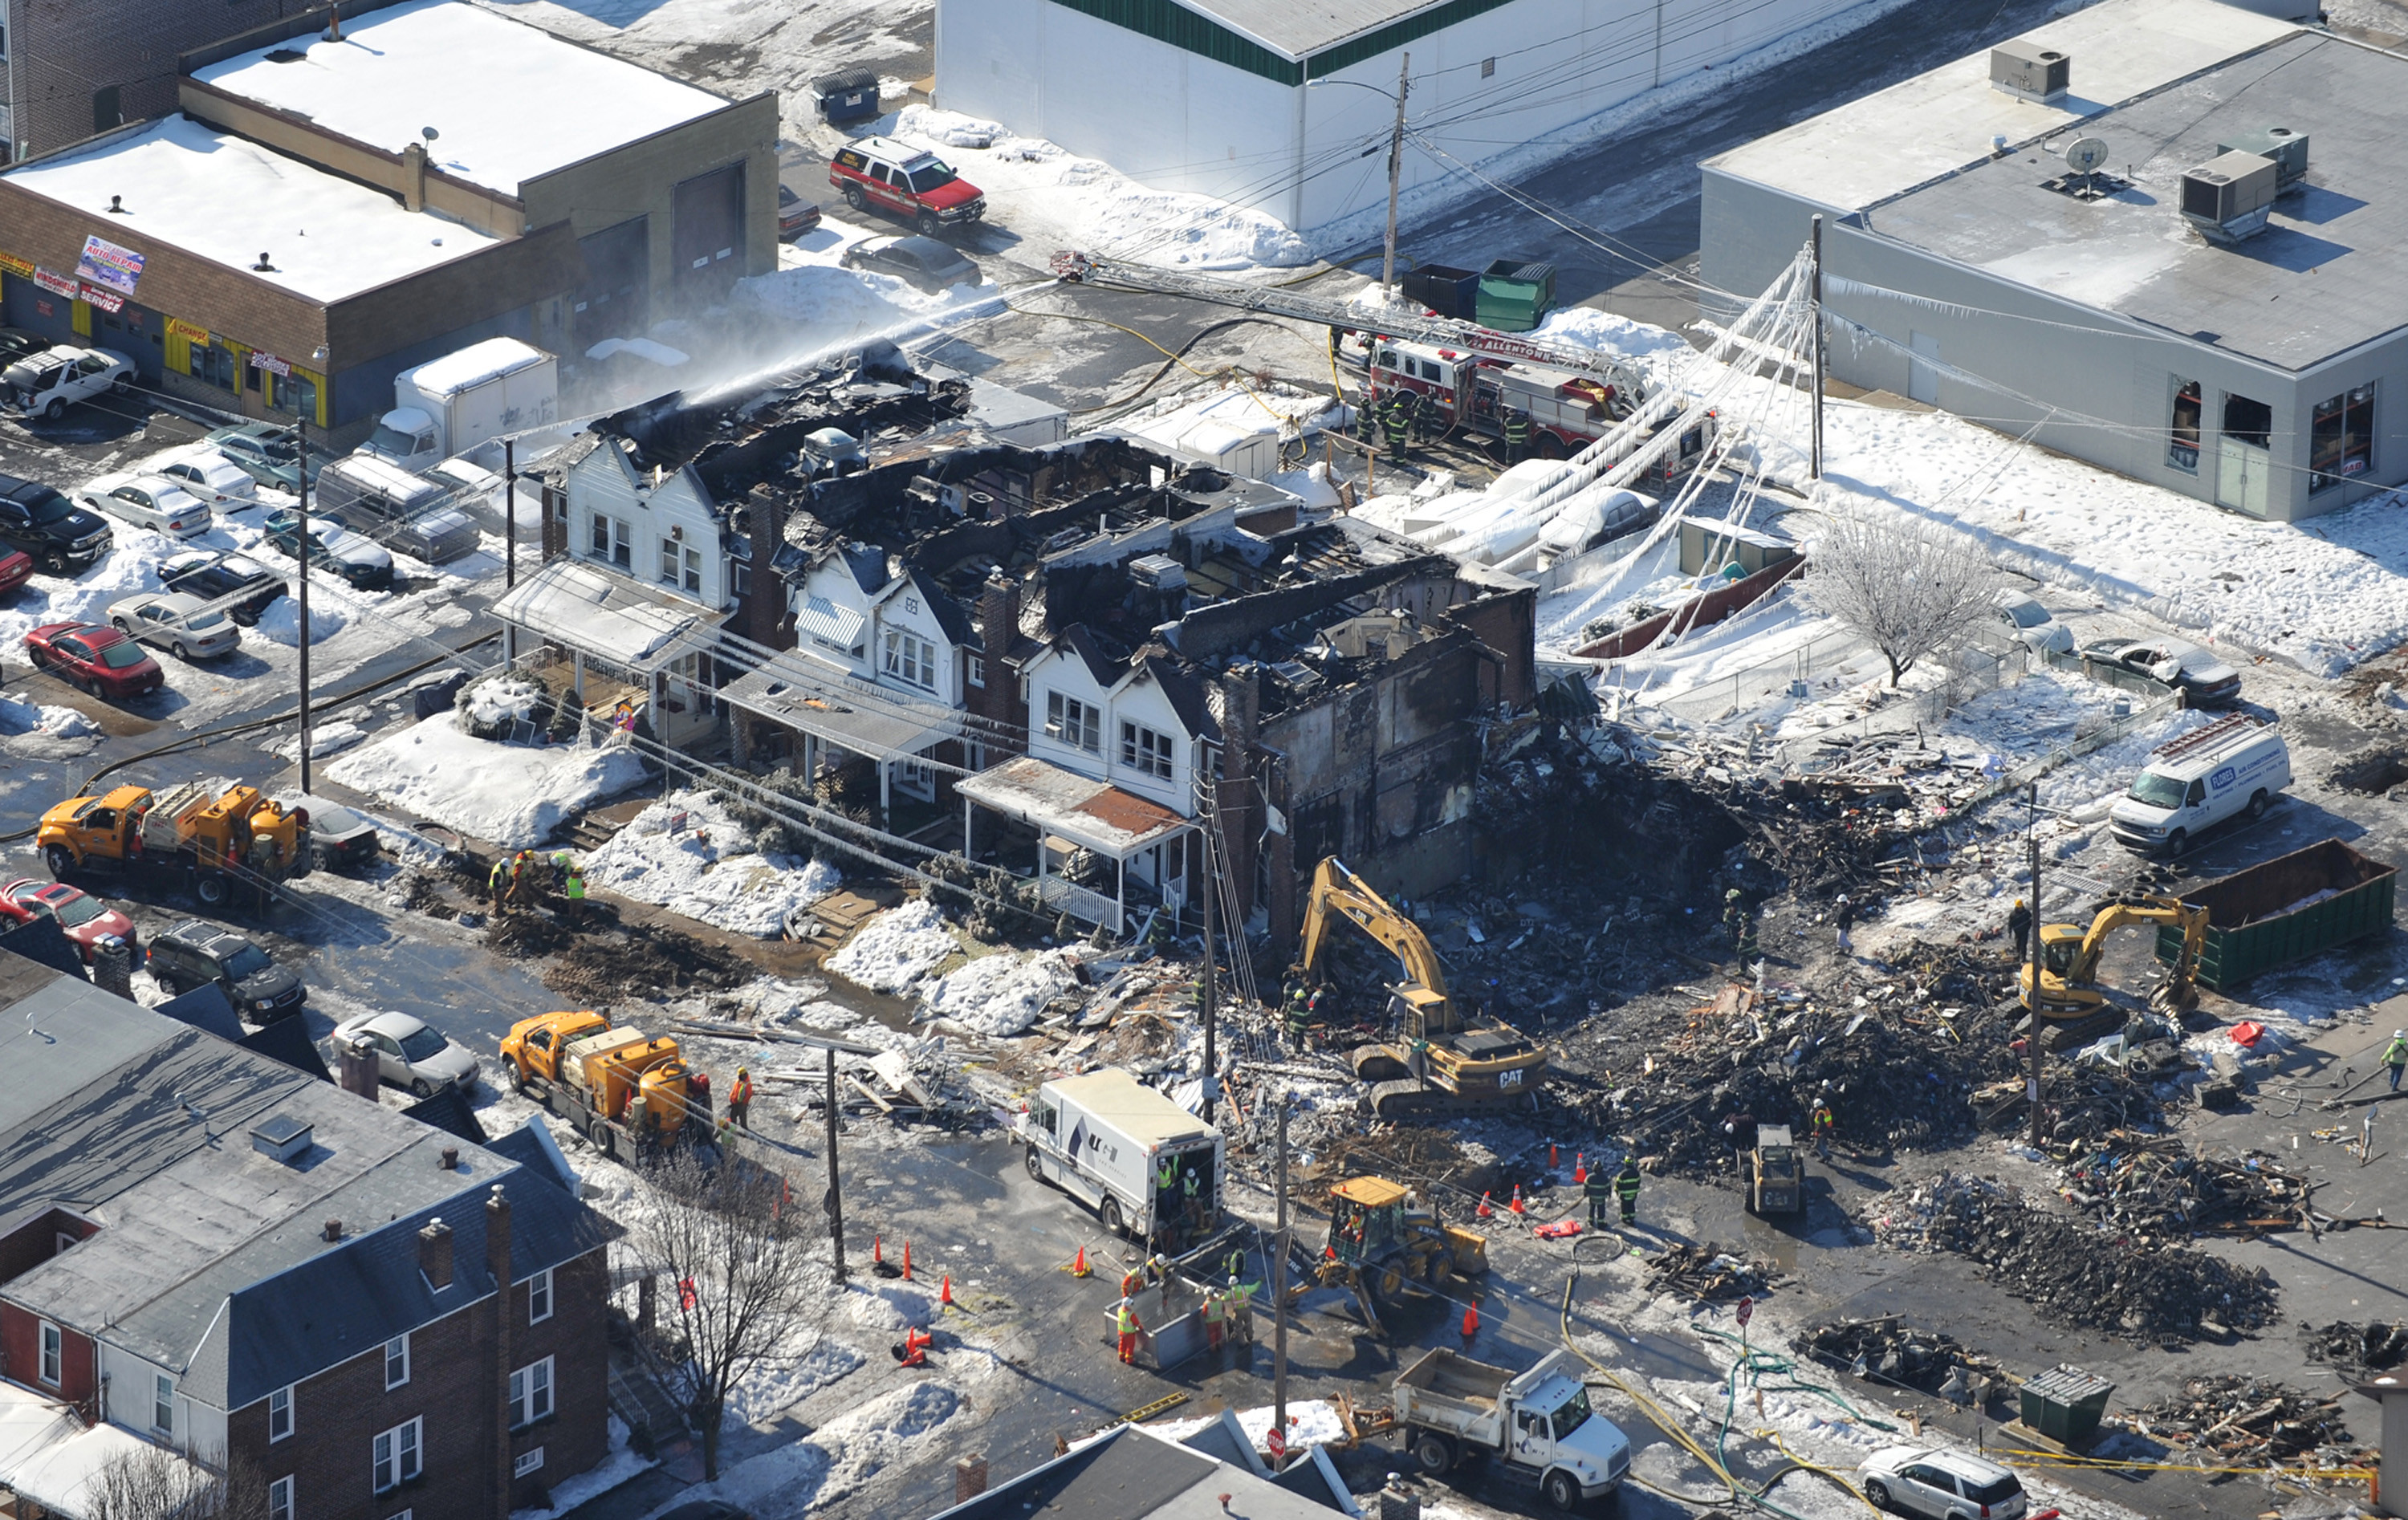 allentown gas explosion